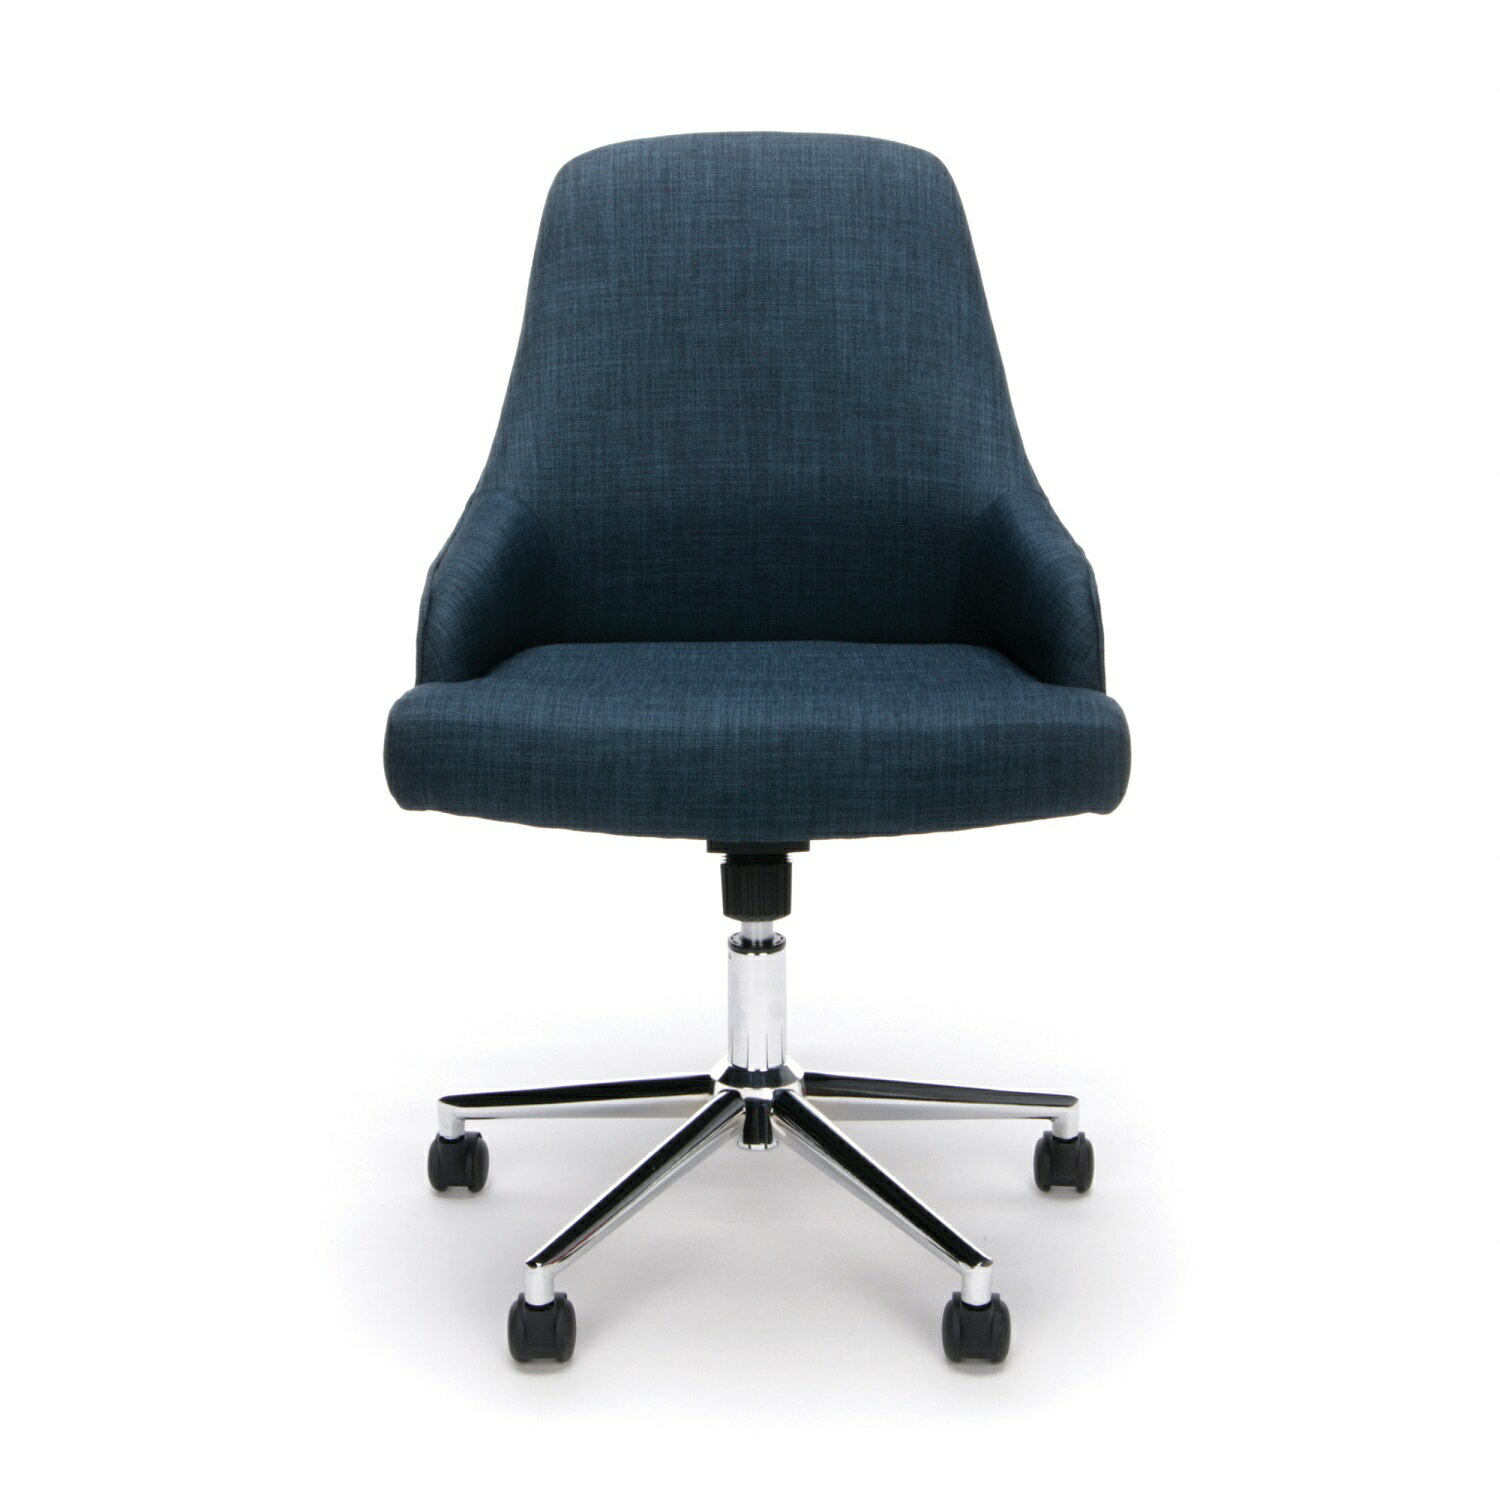 Essentials By Ofm Ess 2086 Upholstered Ergonomic Armless Home Desk Chair 3